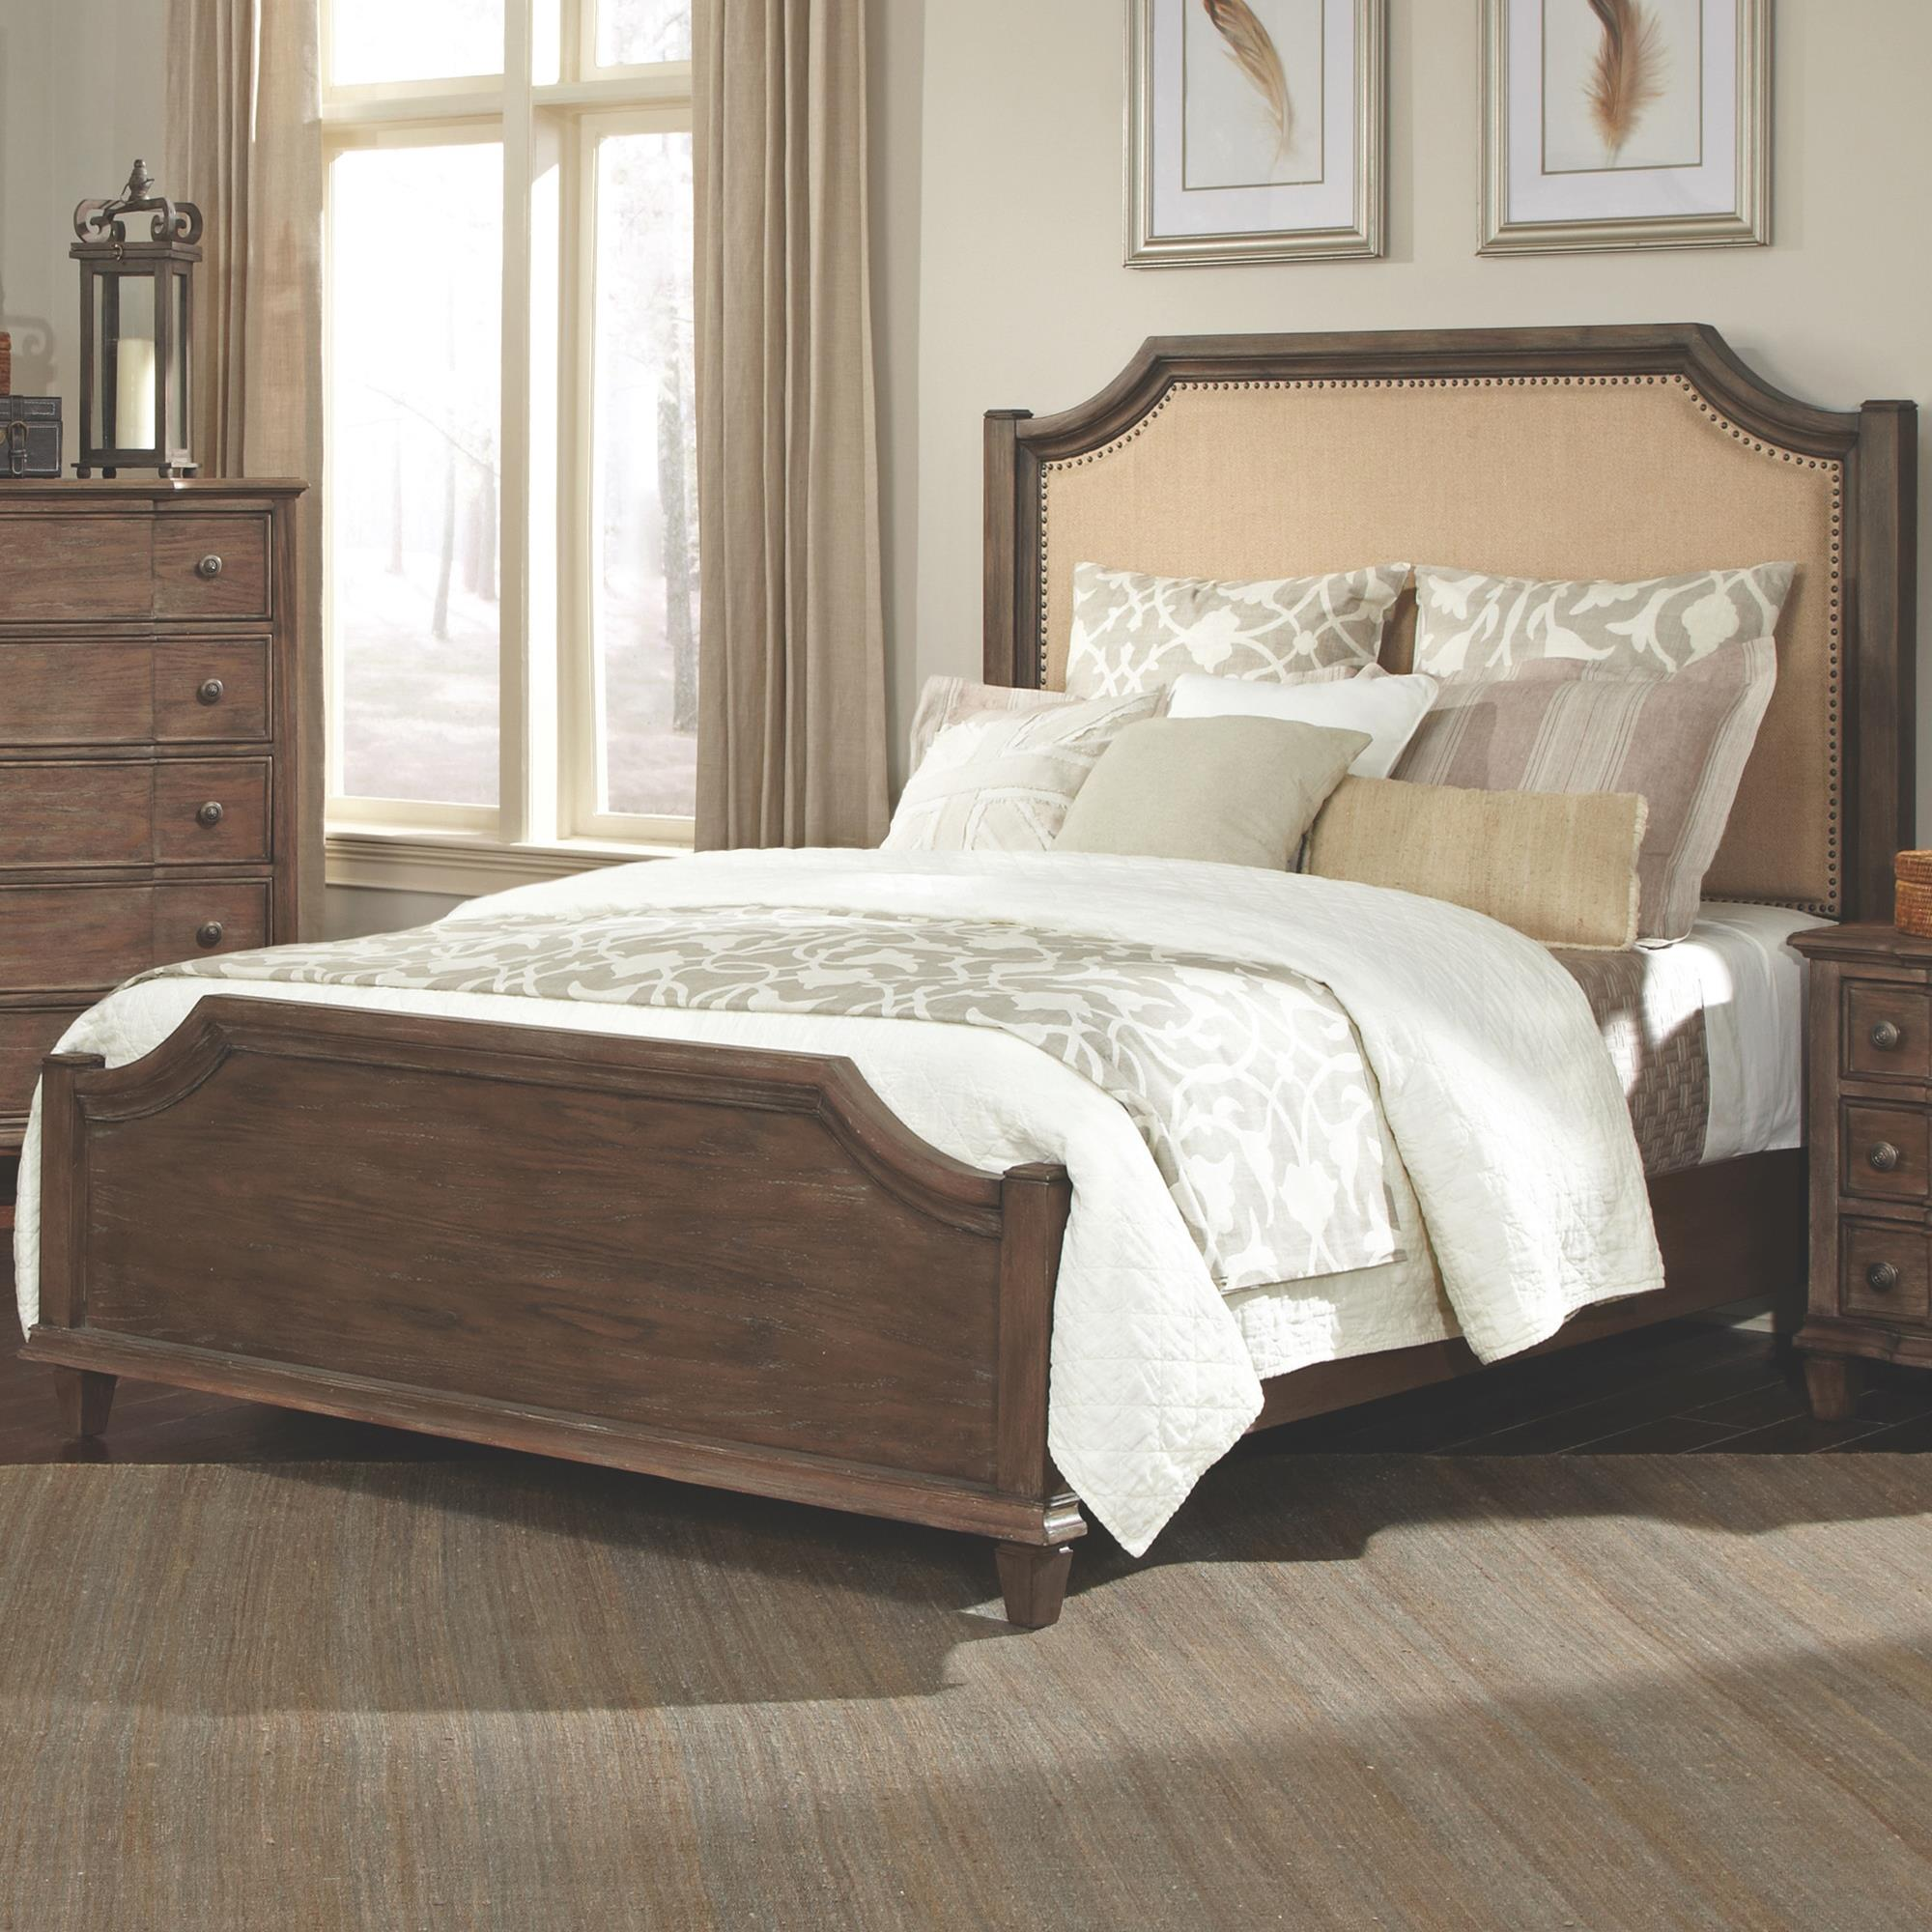 Coaster Dalgarno King Bed with Upholstered Headboard - Item Number: 204241KE